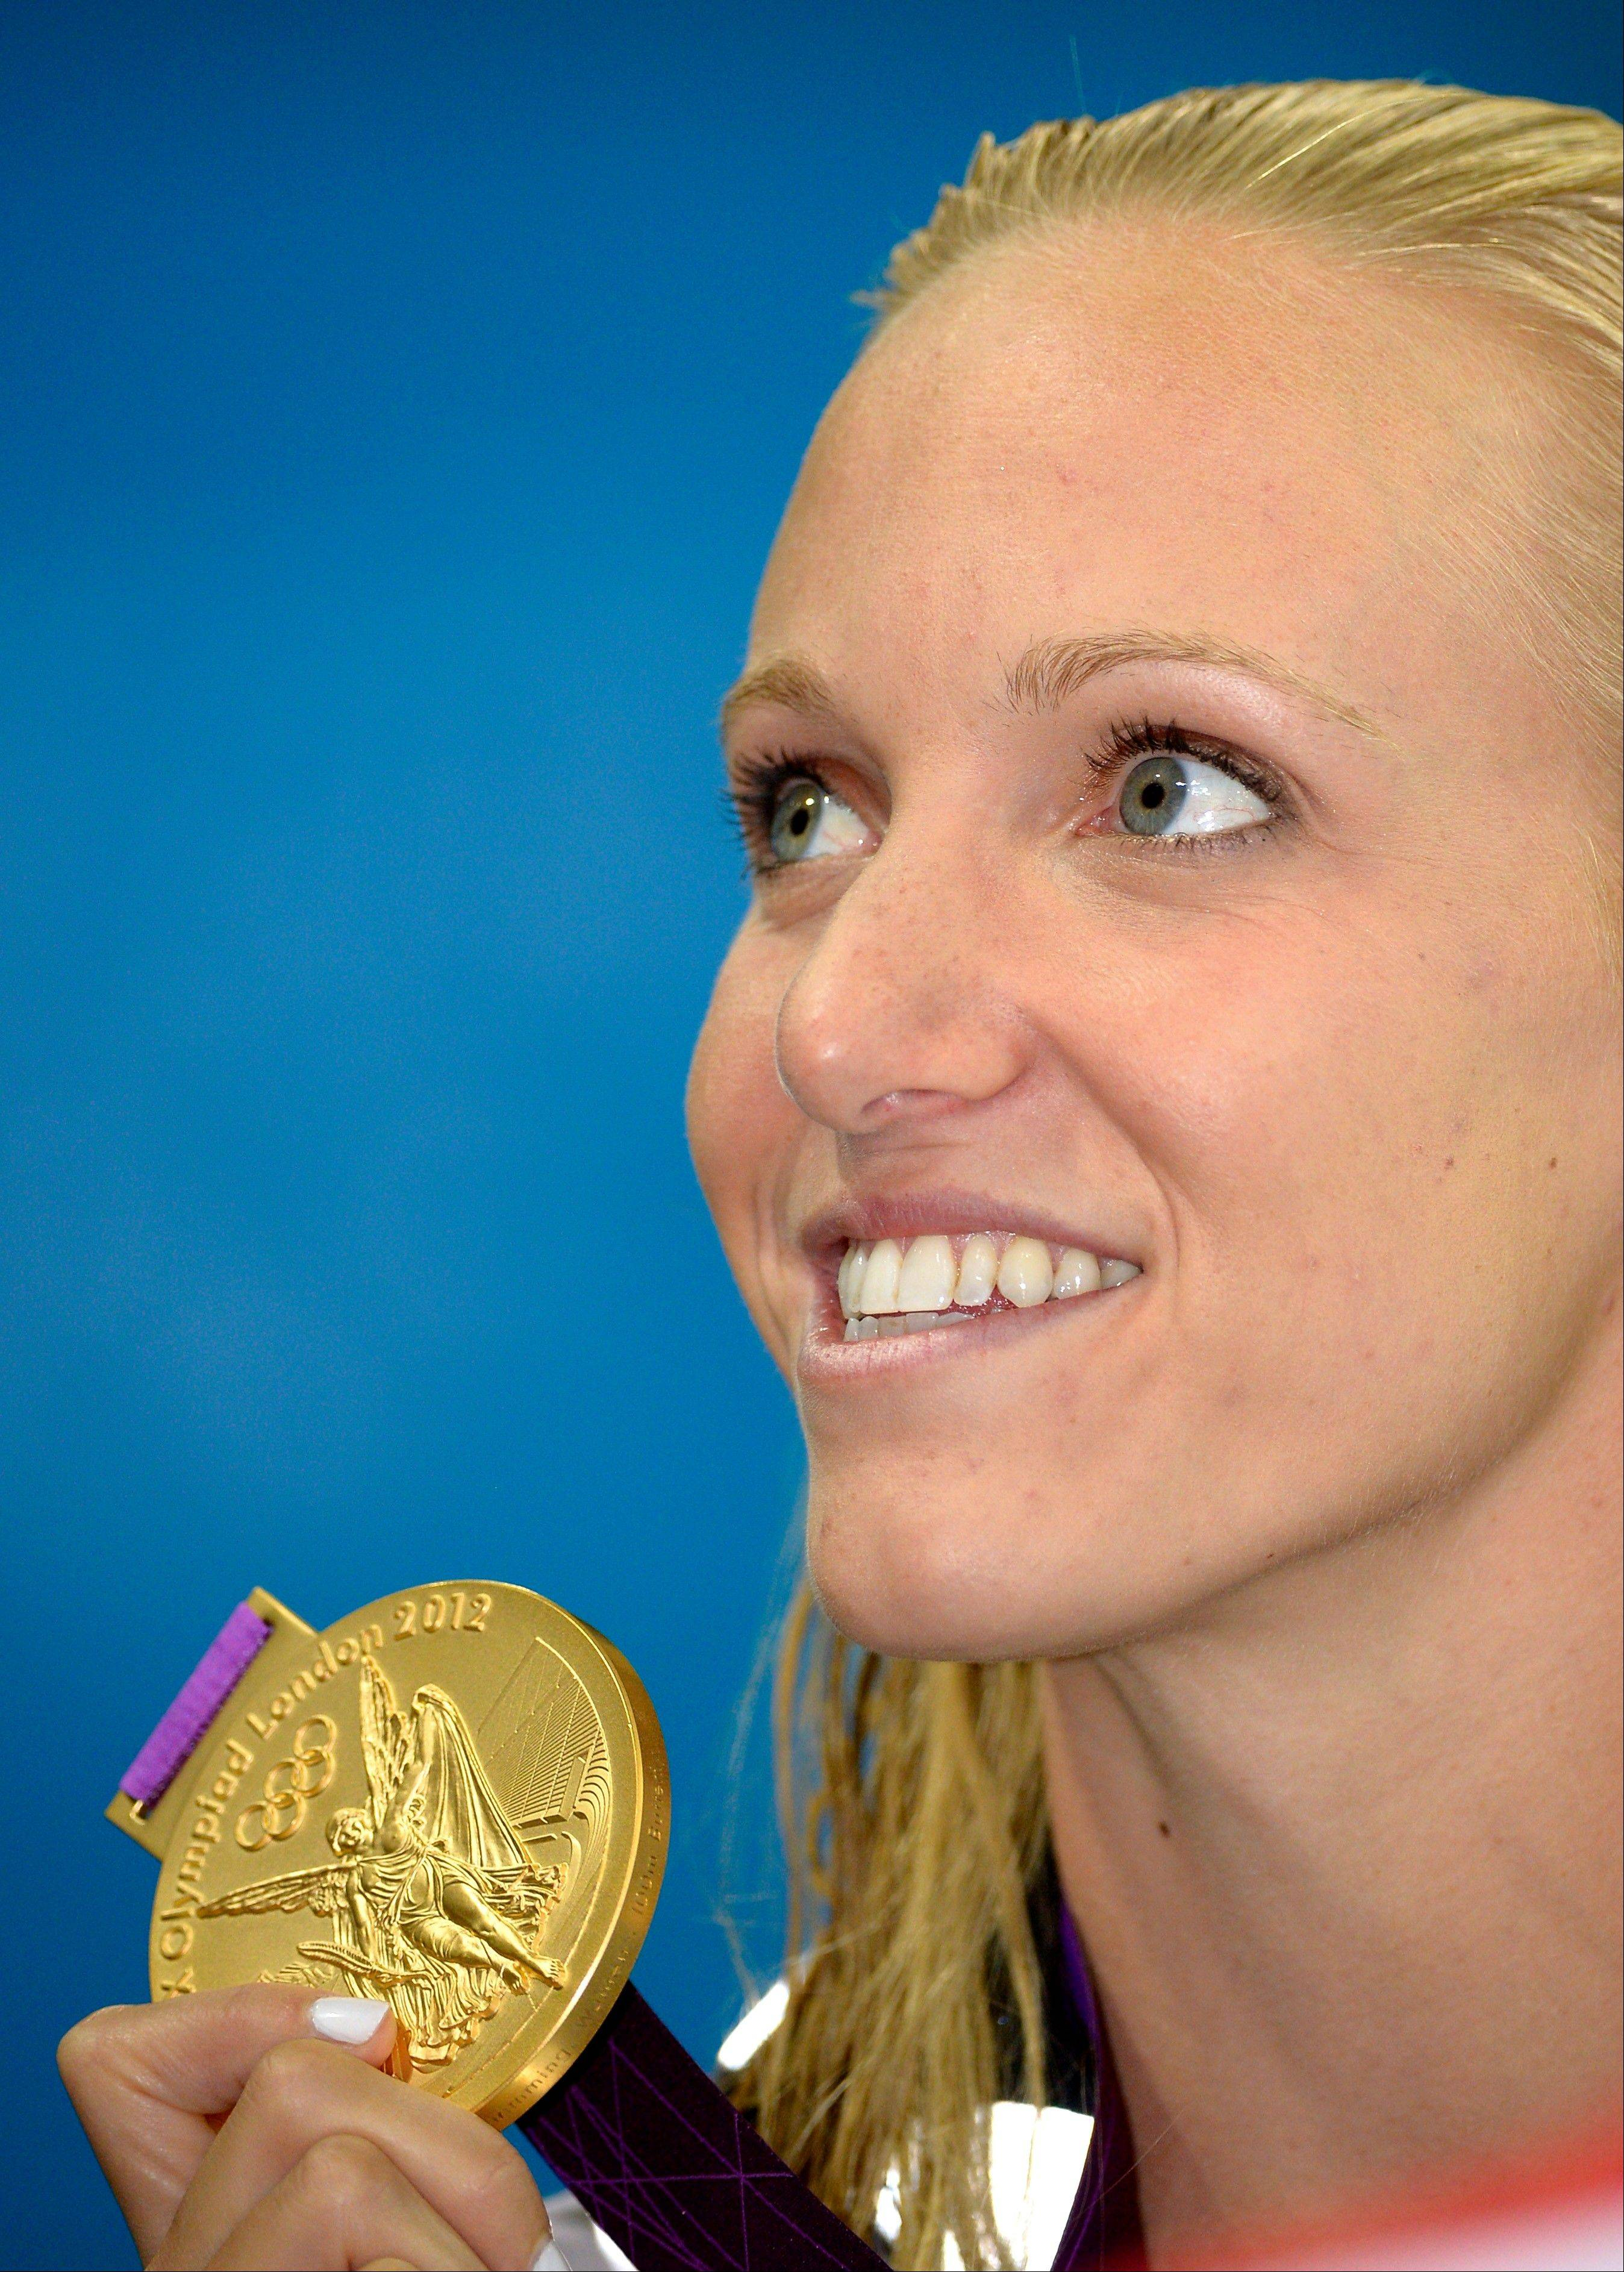 United States� Dana Vollmer poses with her gold medal for the women�s 100-meter butterfly swimming final at the Aquatics Centre in the Olympic Park during the 2012 Summer Olympics in London, Sunday. Vollmer set a new world record with a time of 55.98.